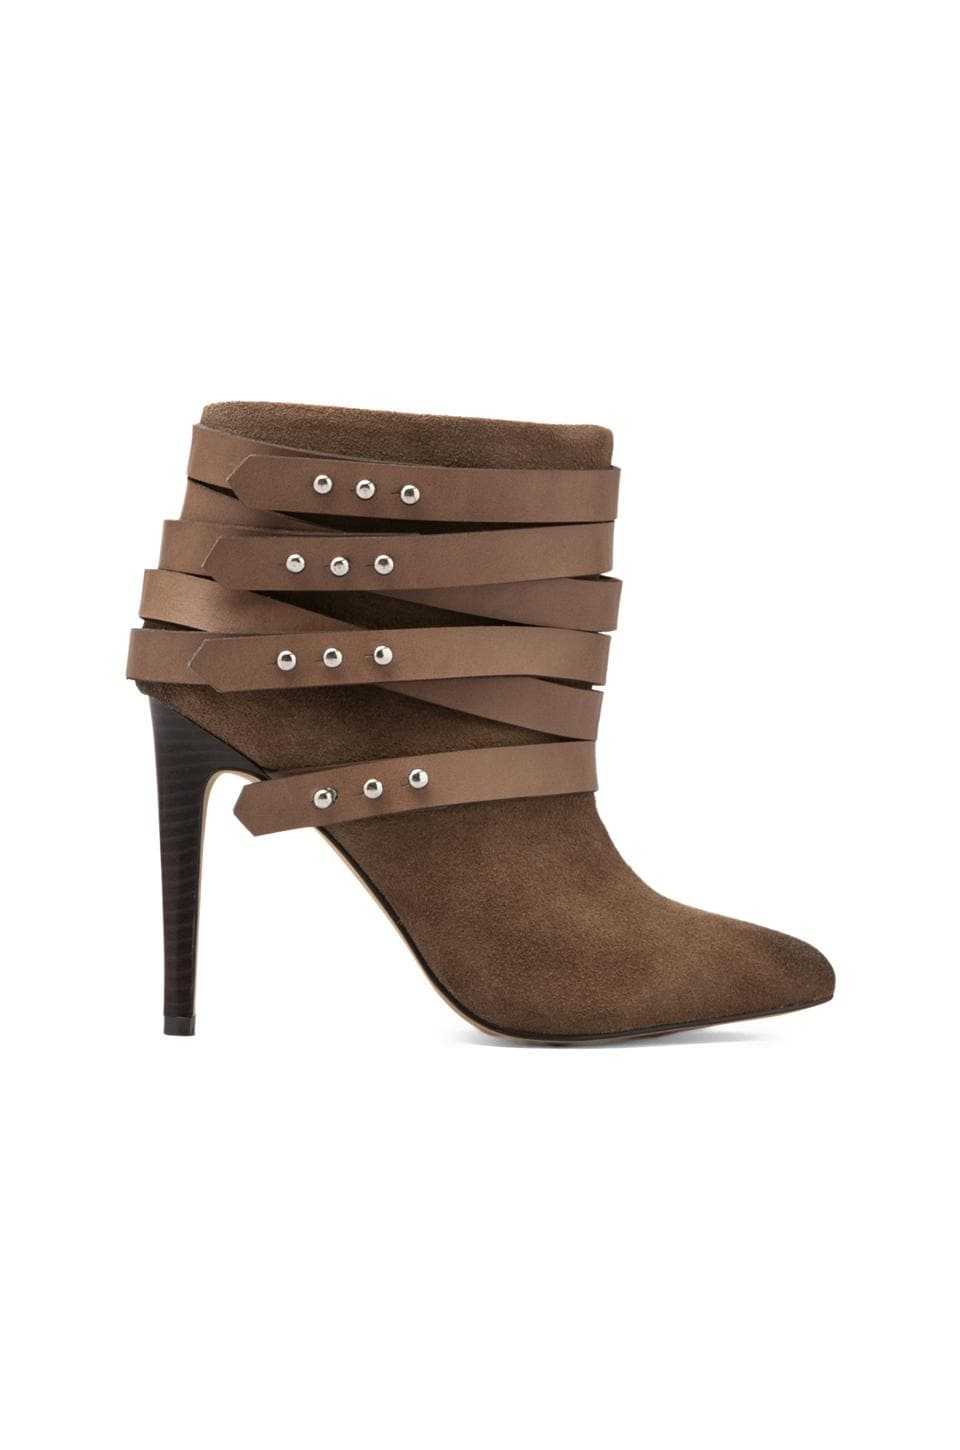 Joe's Jeans Landry Bootie in Taupe